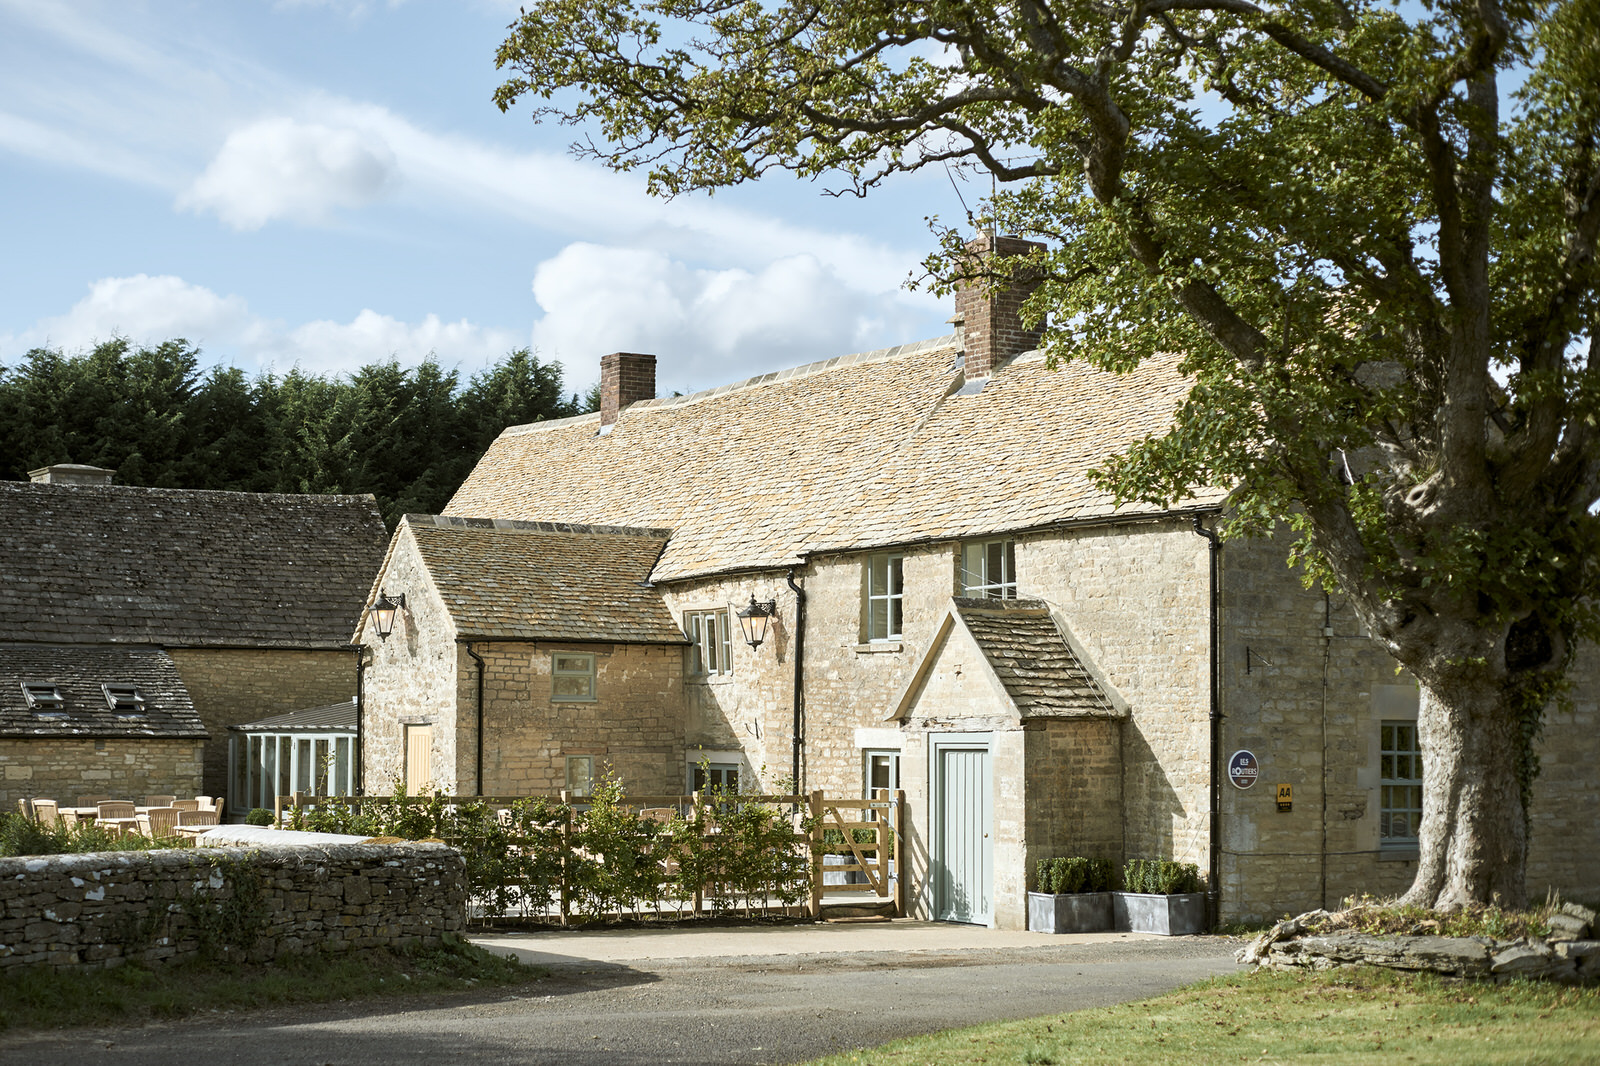 The Stump - GLOUCESTERSHIRE, GL54 4NNLocated two miles from Cripps Barn and nine miles from Stone Barn. The Stump is a stunning Cotswold pub with ten ensuite bedrooms serving award winning pizzas.